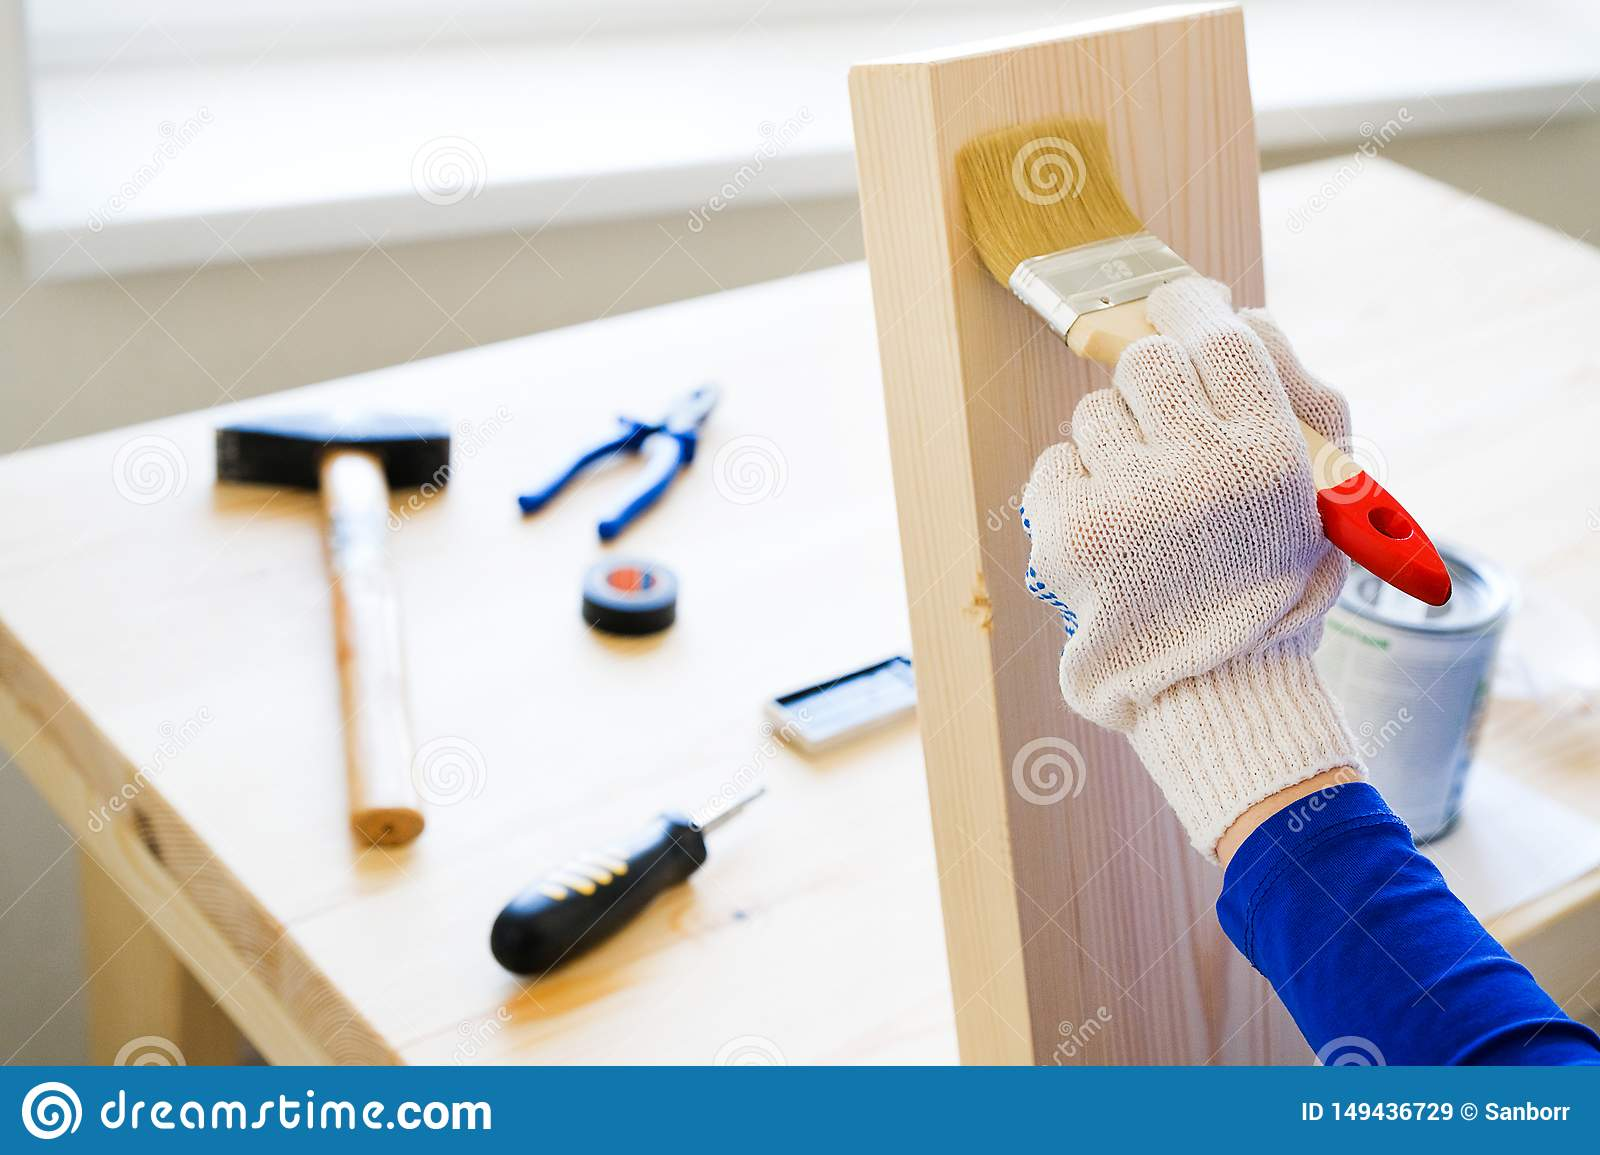 Repairman, carpenter, hired worker applies a protective varnish or paint brush on a wooden Board. Gloved hands, construction tools